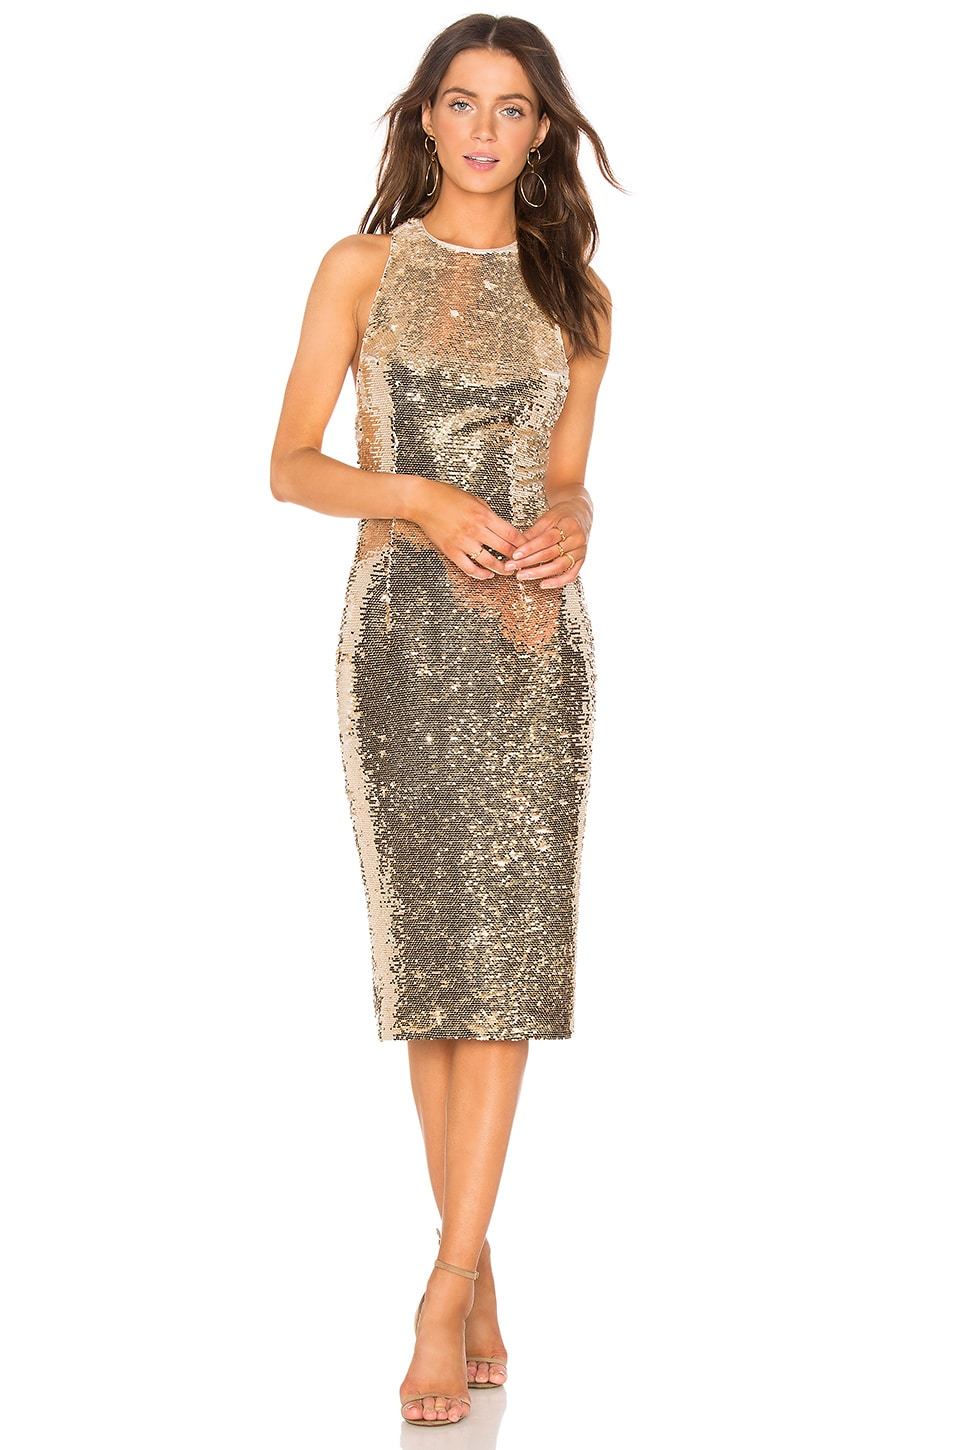 Misha Collection Amya Dress in Light Gold